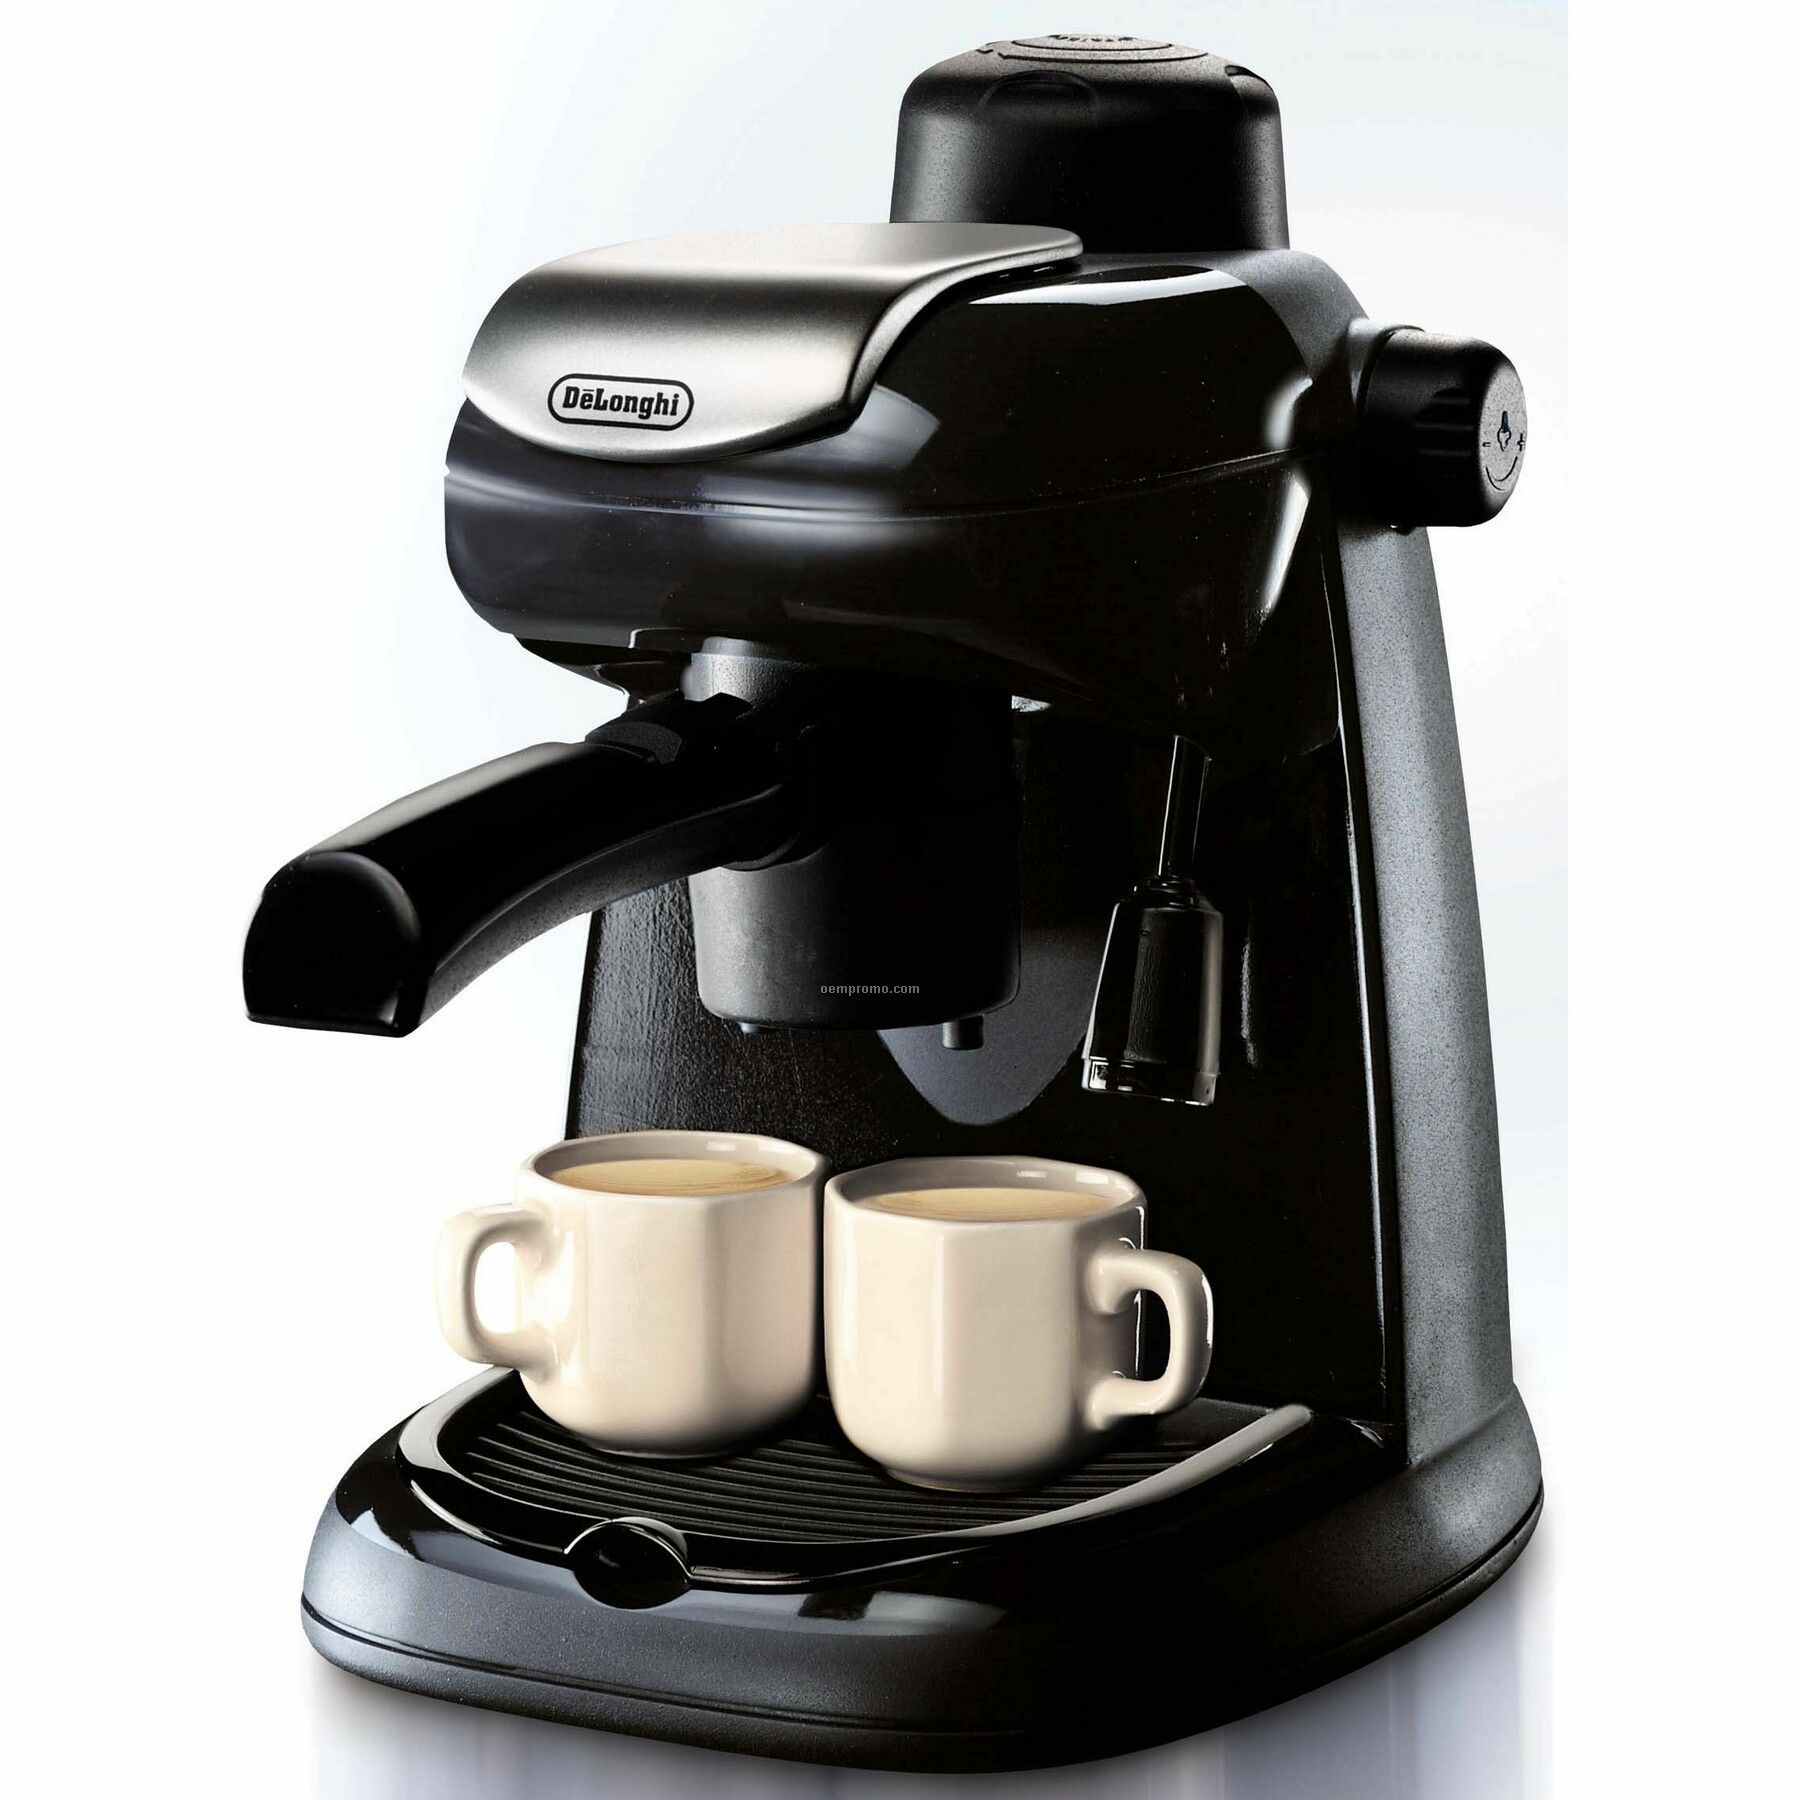 One Cup Latte Coffee Maker : Delonghi 4 Cup Espresso And Cappuccino Maker,China Wholesale Delonghi 4 Cup Espresso And ...